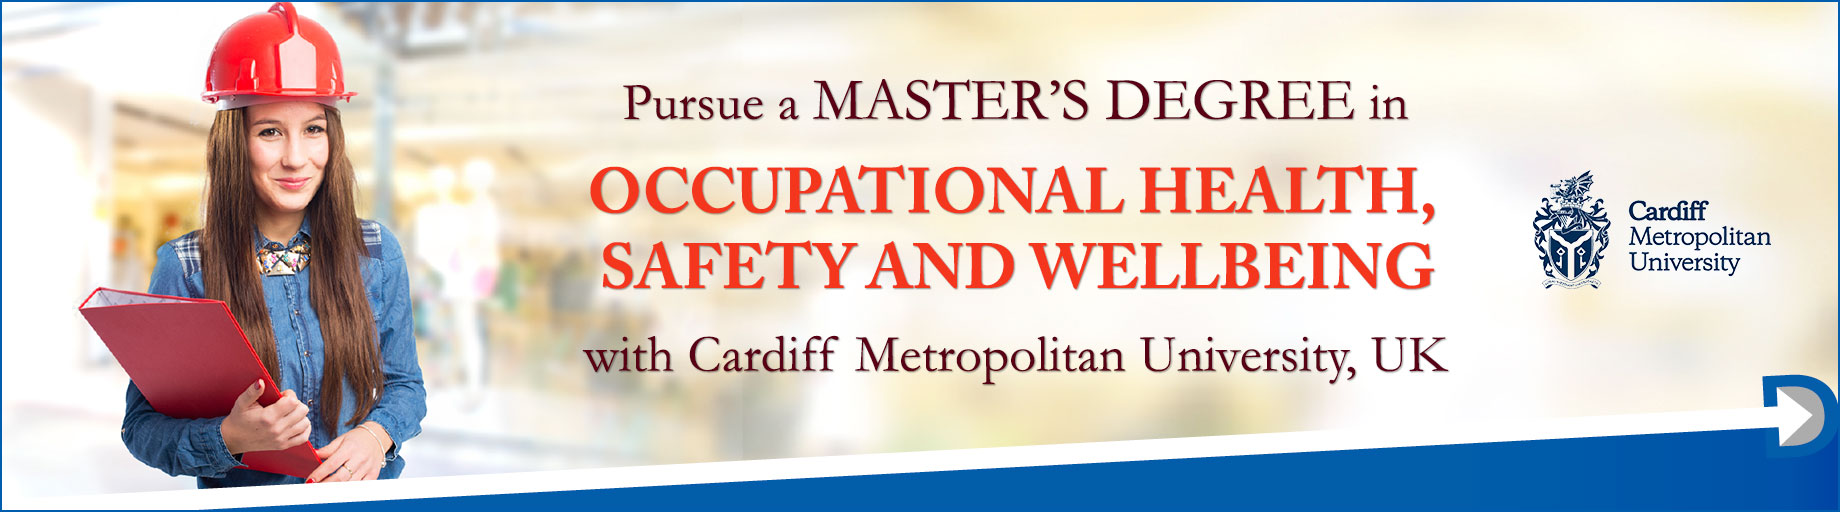 Occupational-Health-Safety-and-Wellbeing